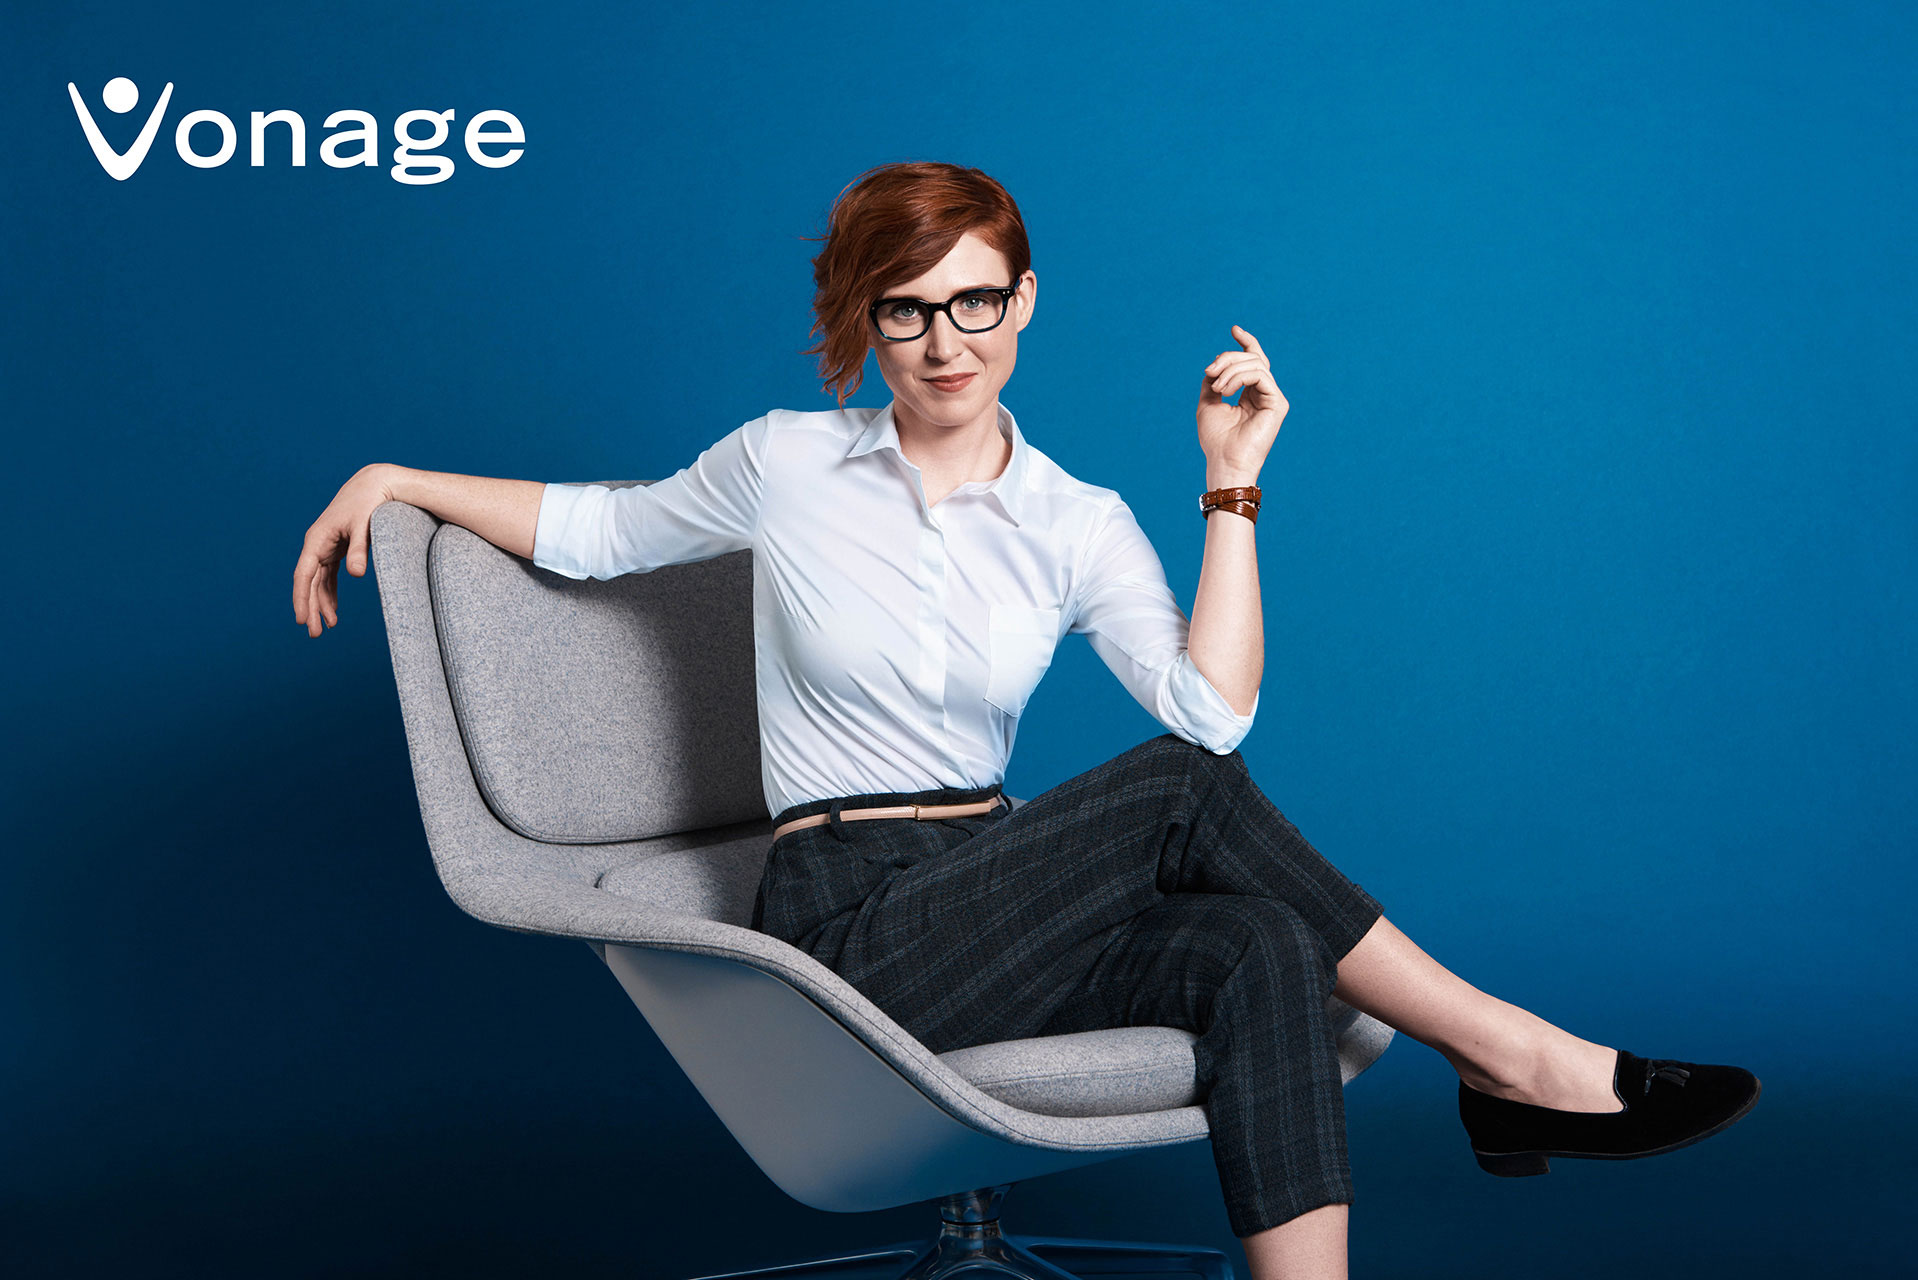 VONAGE | MOLLY CRANNA